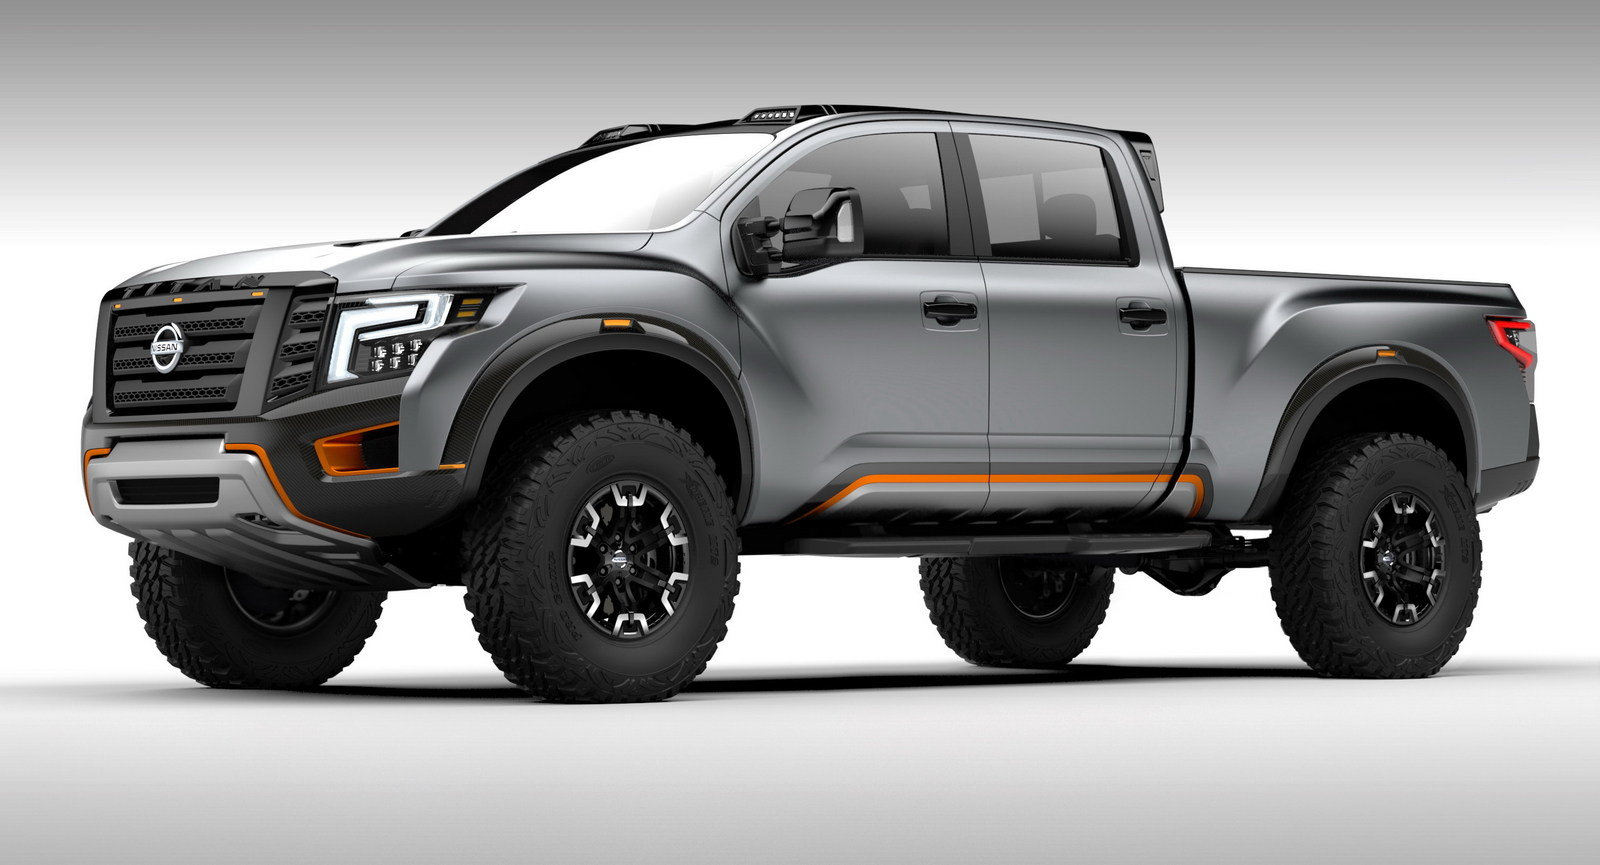 2016 nissan titan warrior concept picture 661592 truck review top speed. Black Bedroom Furniture Sets. Home Design Ideas